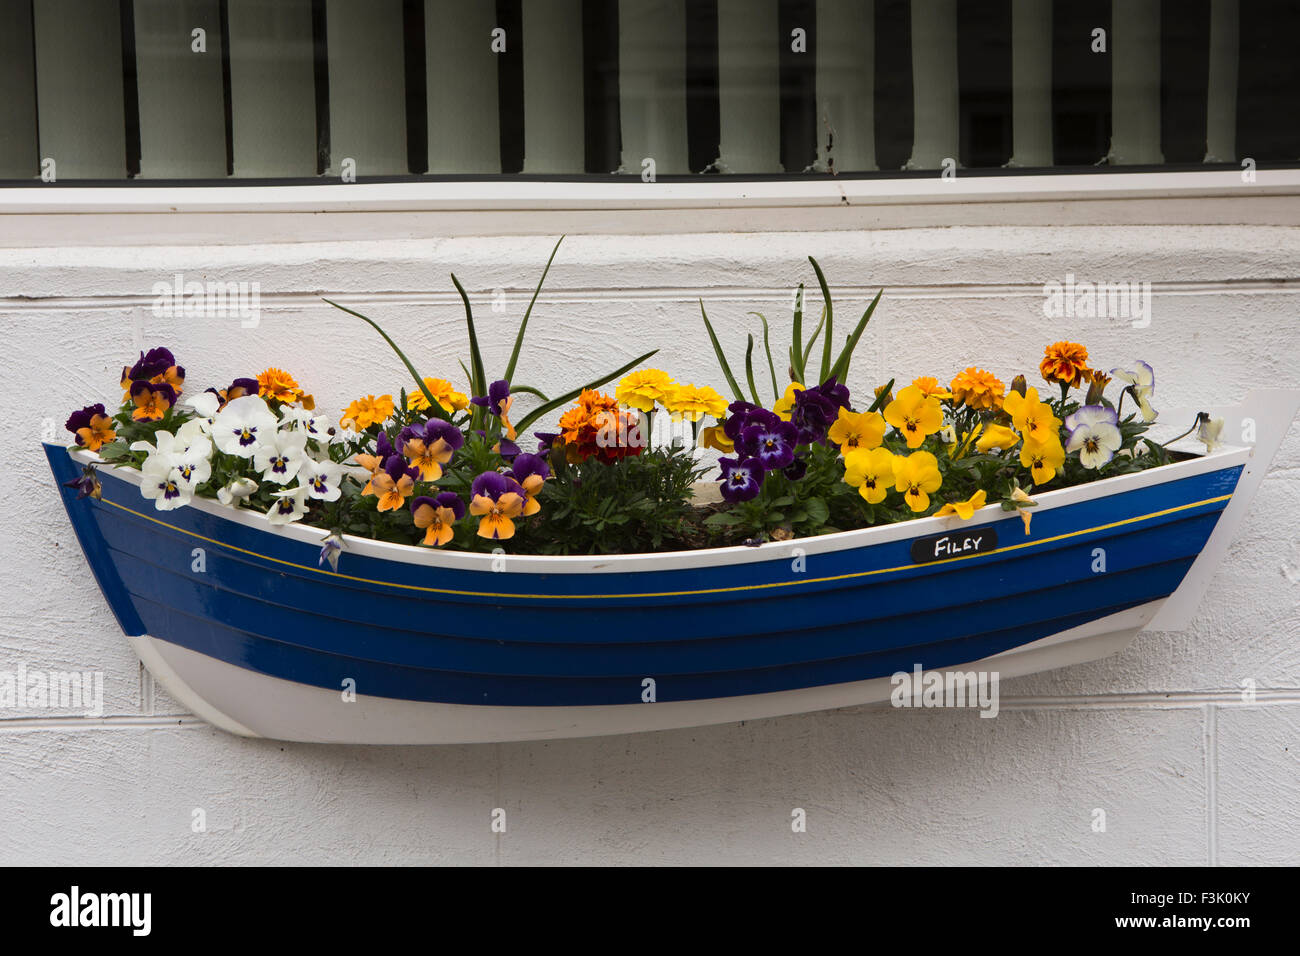 UK, England, Yorkshire East Riding, Filey, Queen Street, boat shaped window box planter - Stock Image